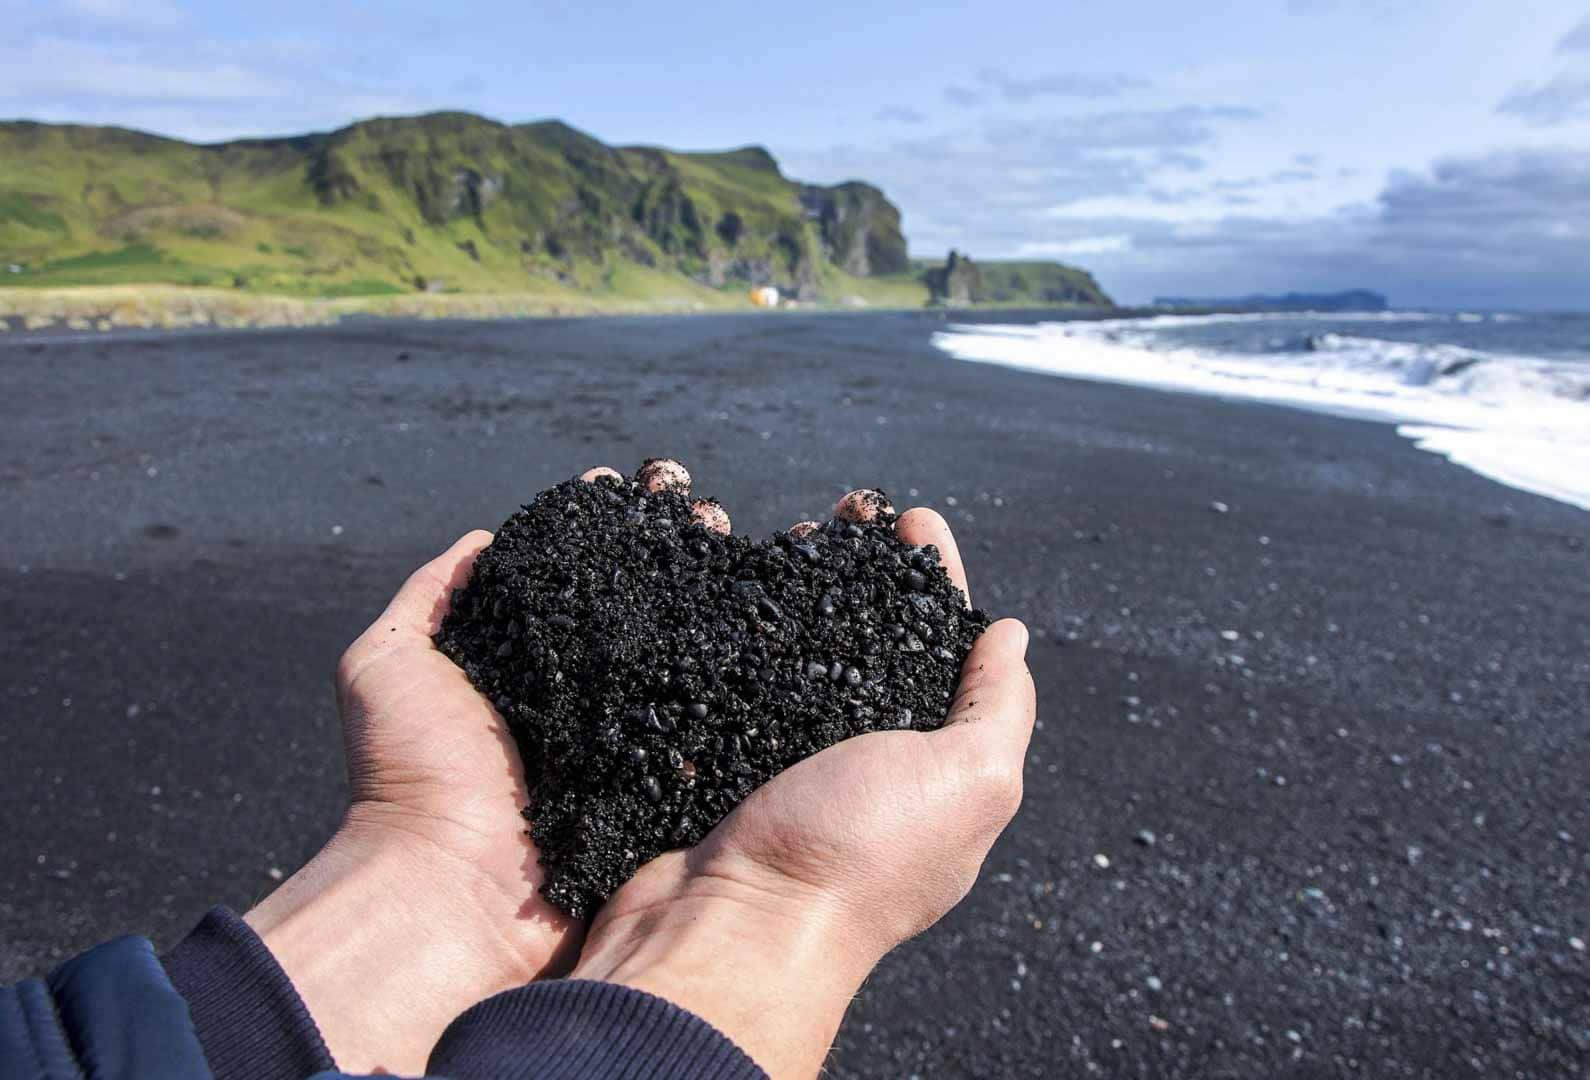 Man Holding Heart Shaped Black Sand on Reynisfjara Black Beach in South Iceland